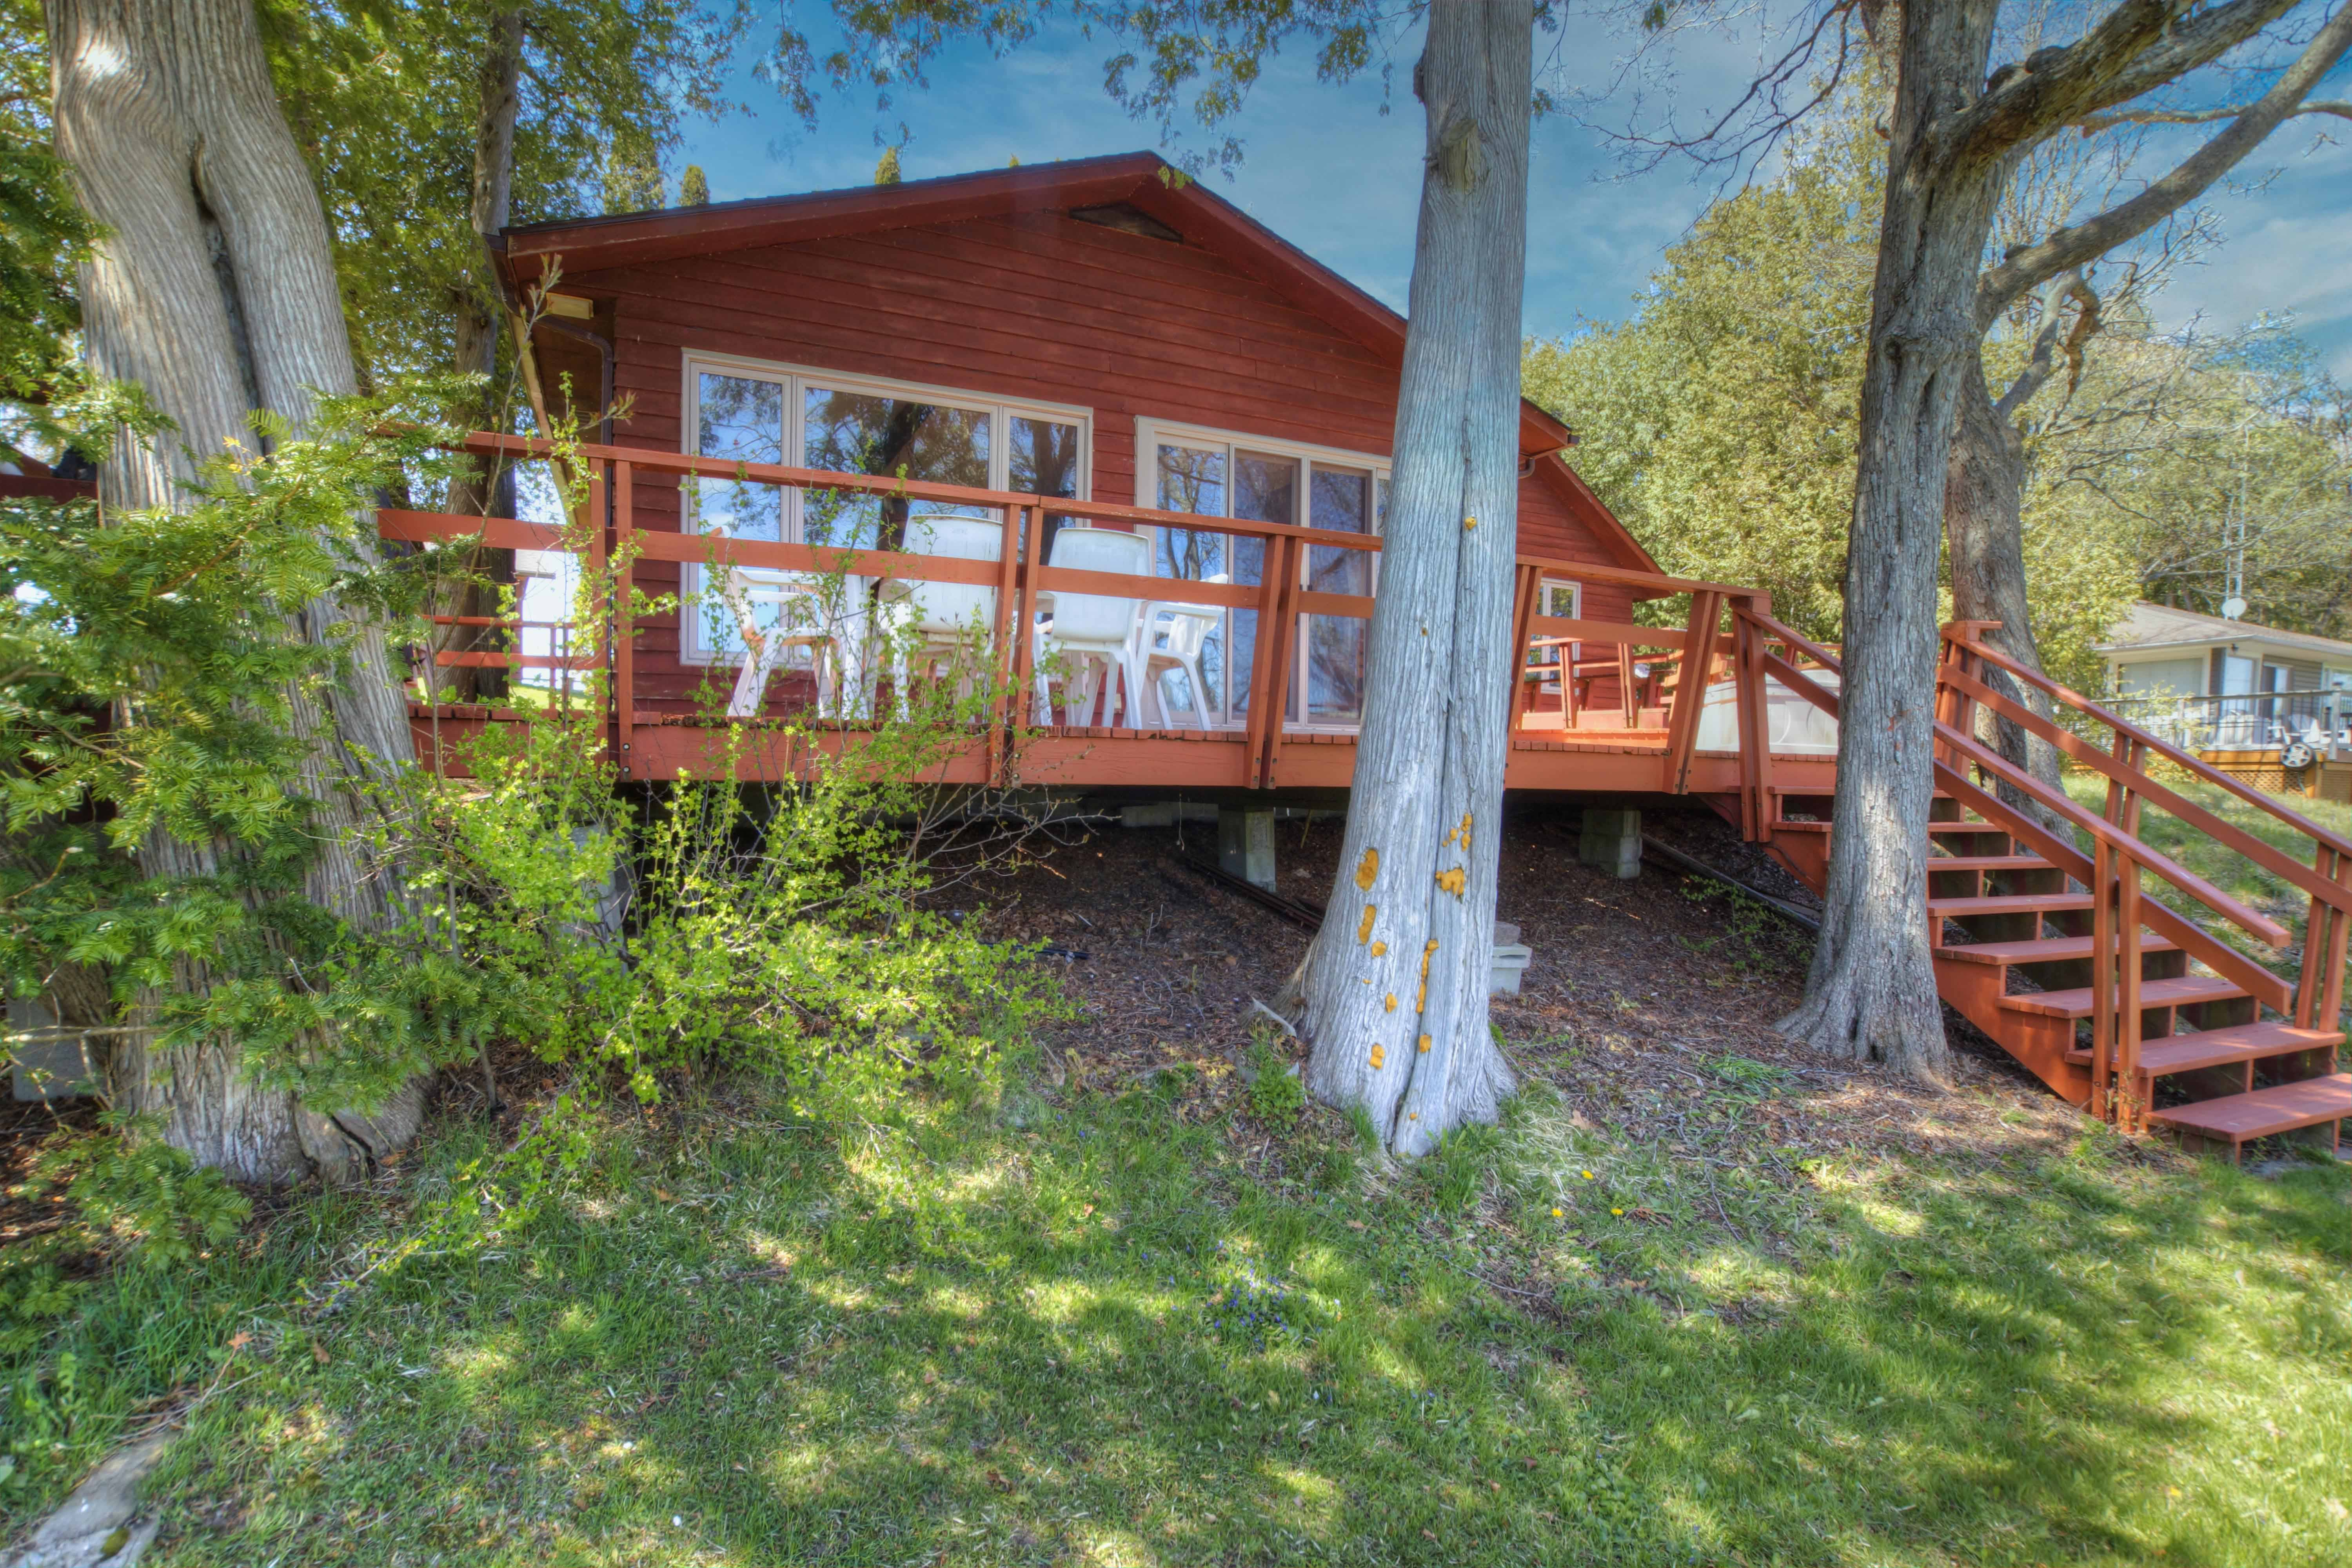 80 Bettys Bay Residential For Sale In Kawartha Lakes